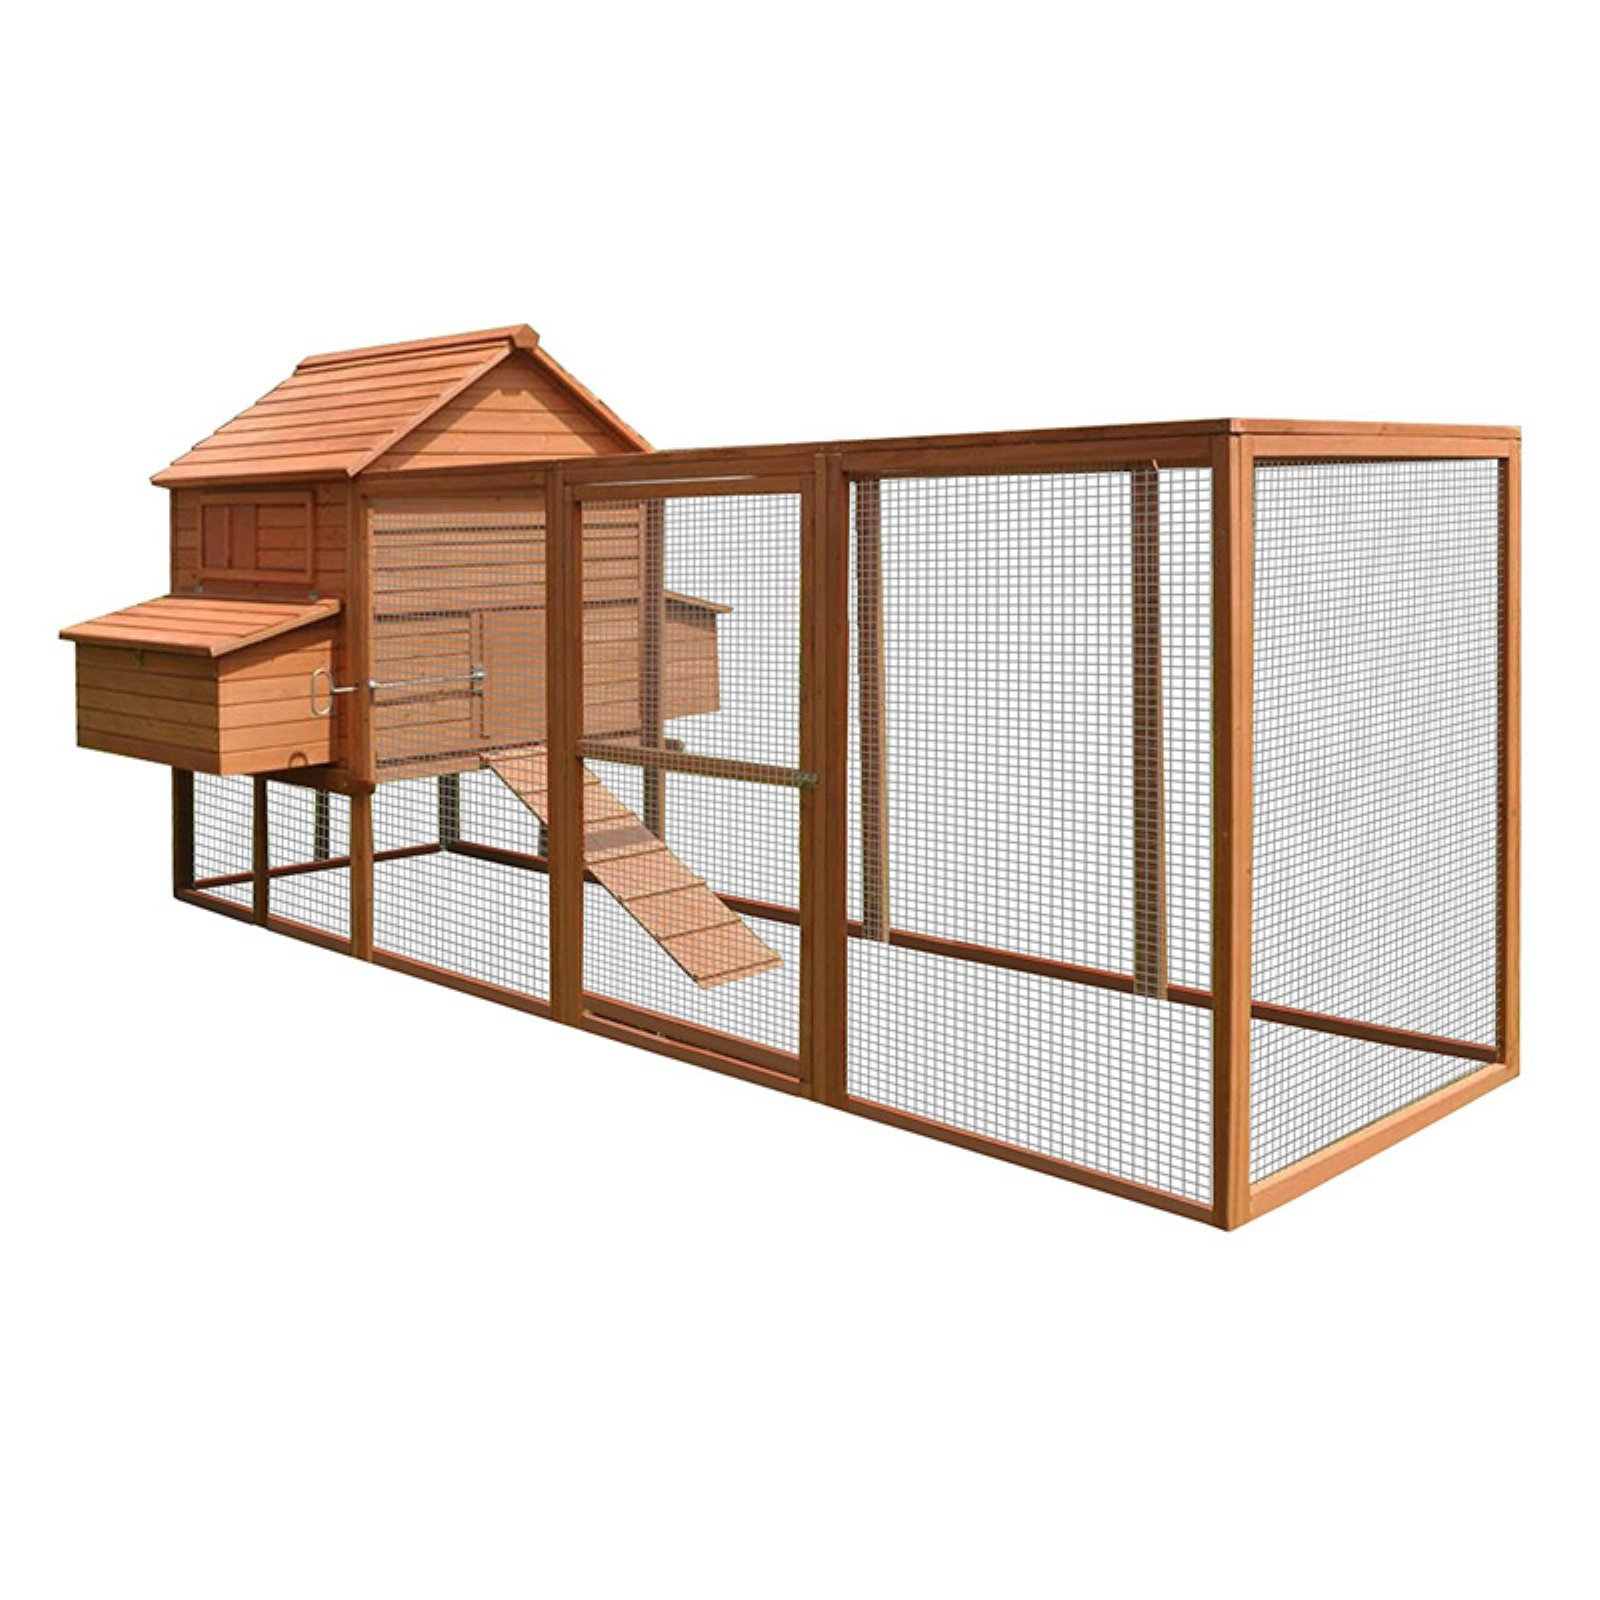 "ALEKO DXH1000RD Spacious Wooden Pet Coop Cage, 143.7"" x 68.5"" x 66.5"", Red"